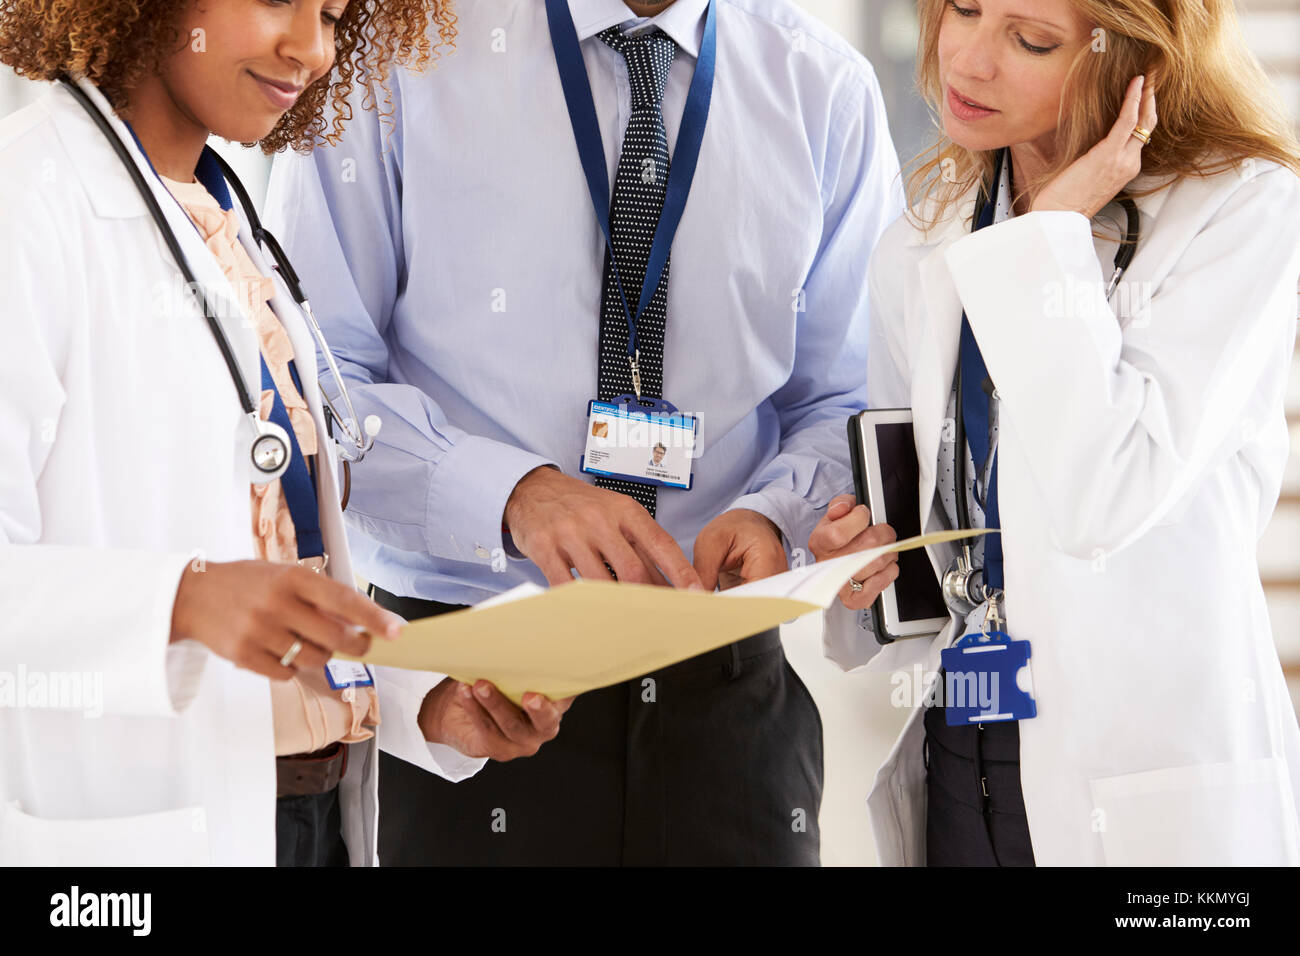 Three young male and female doctors consulting, mid section - Stock Image